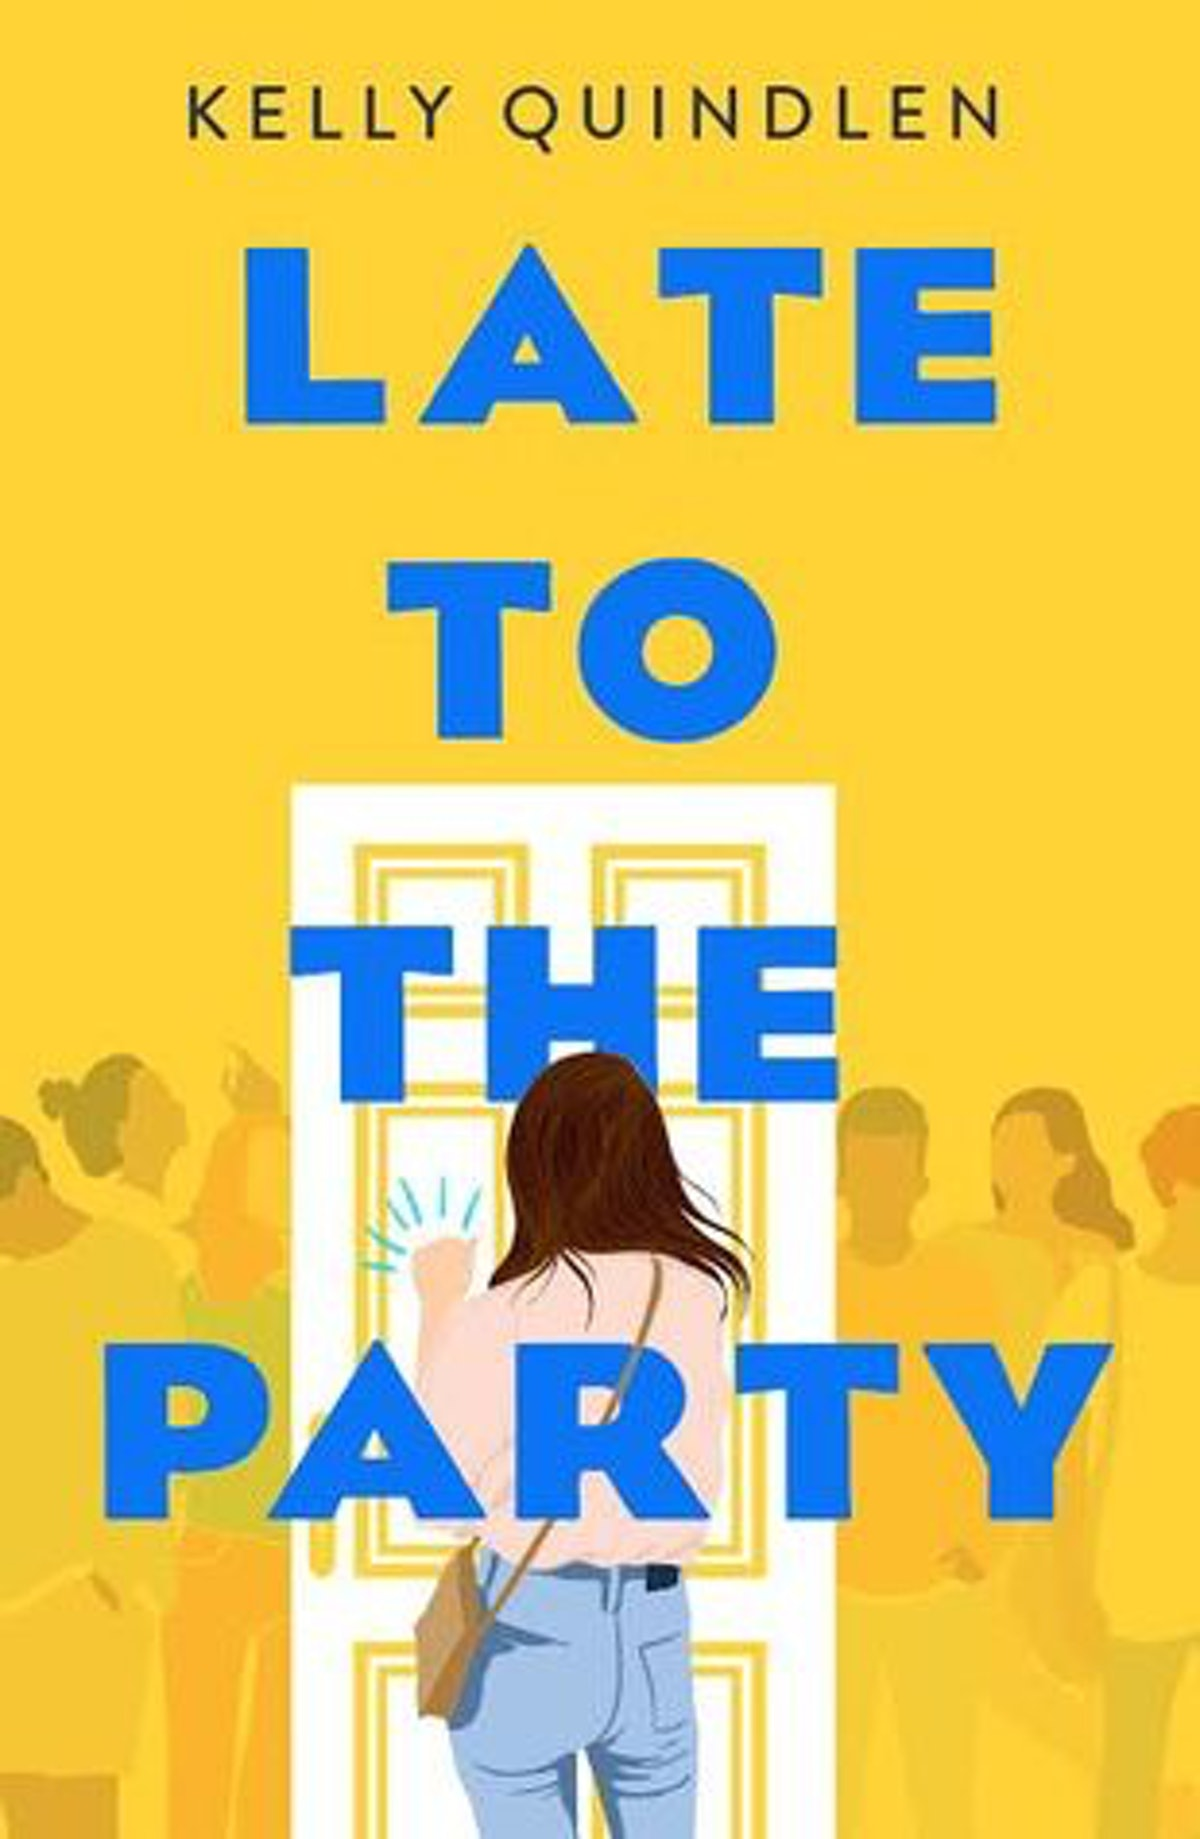 'Late to the Party' by Kelly Quindlen